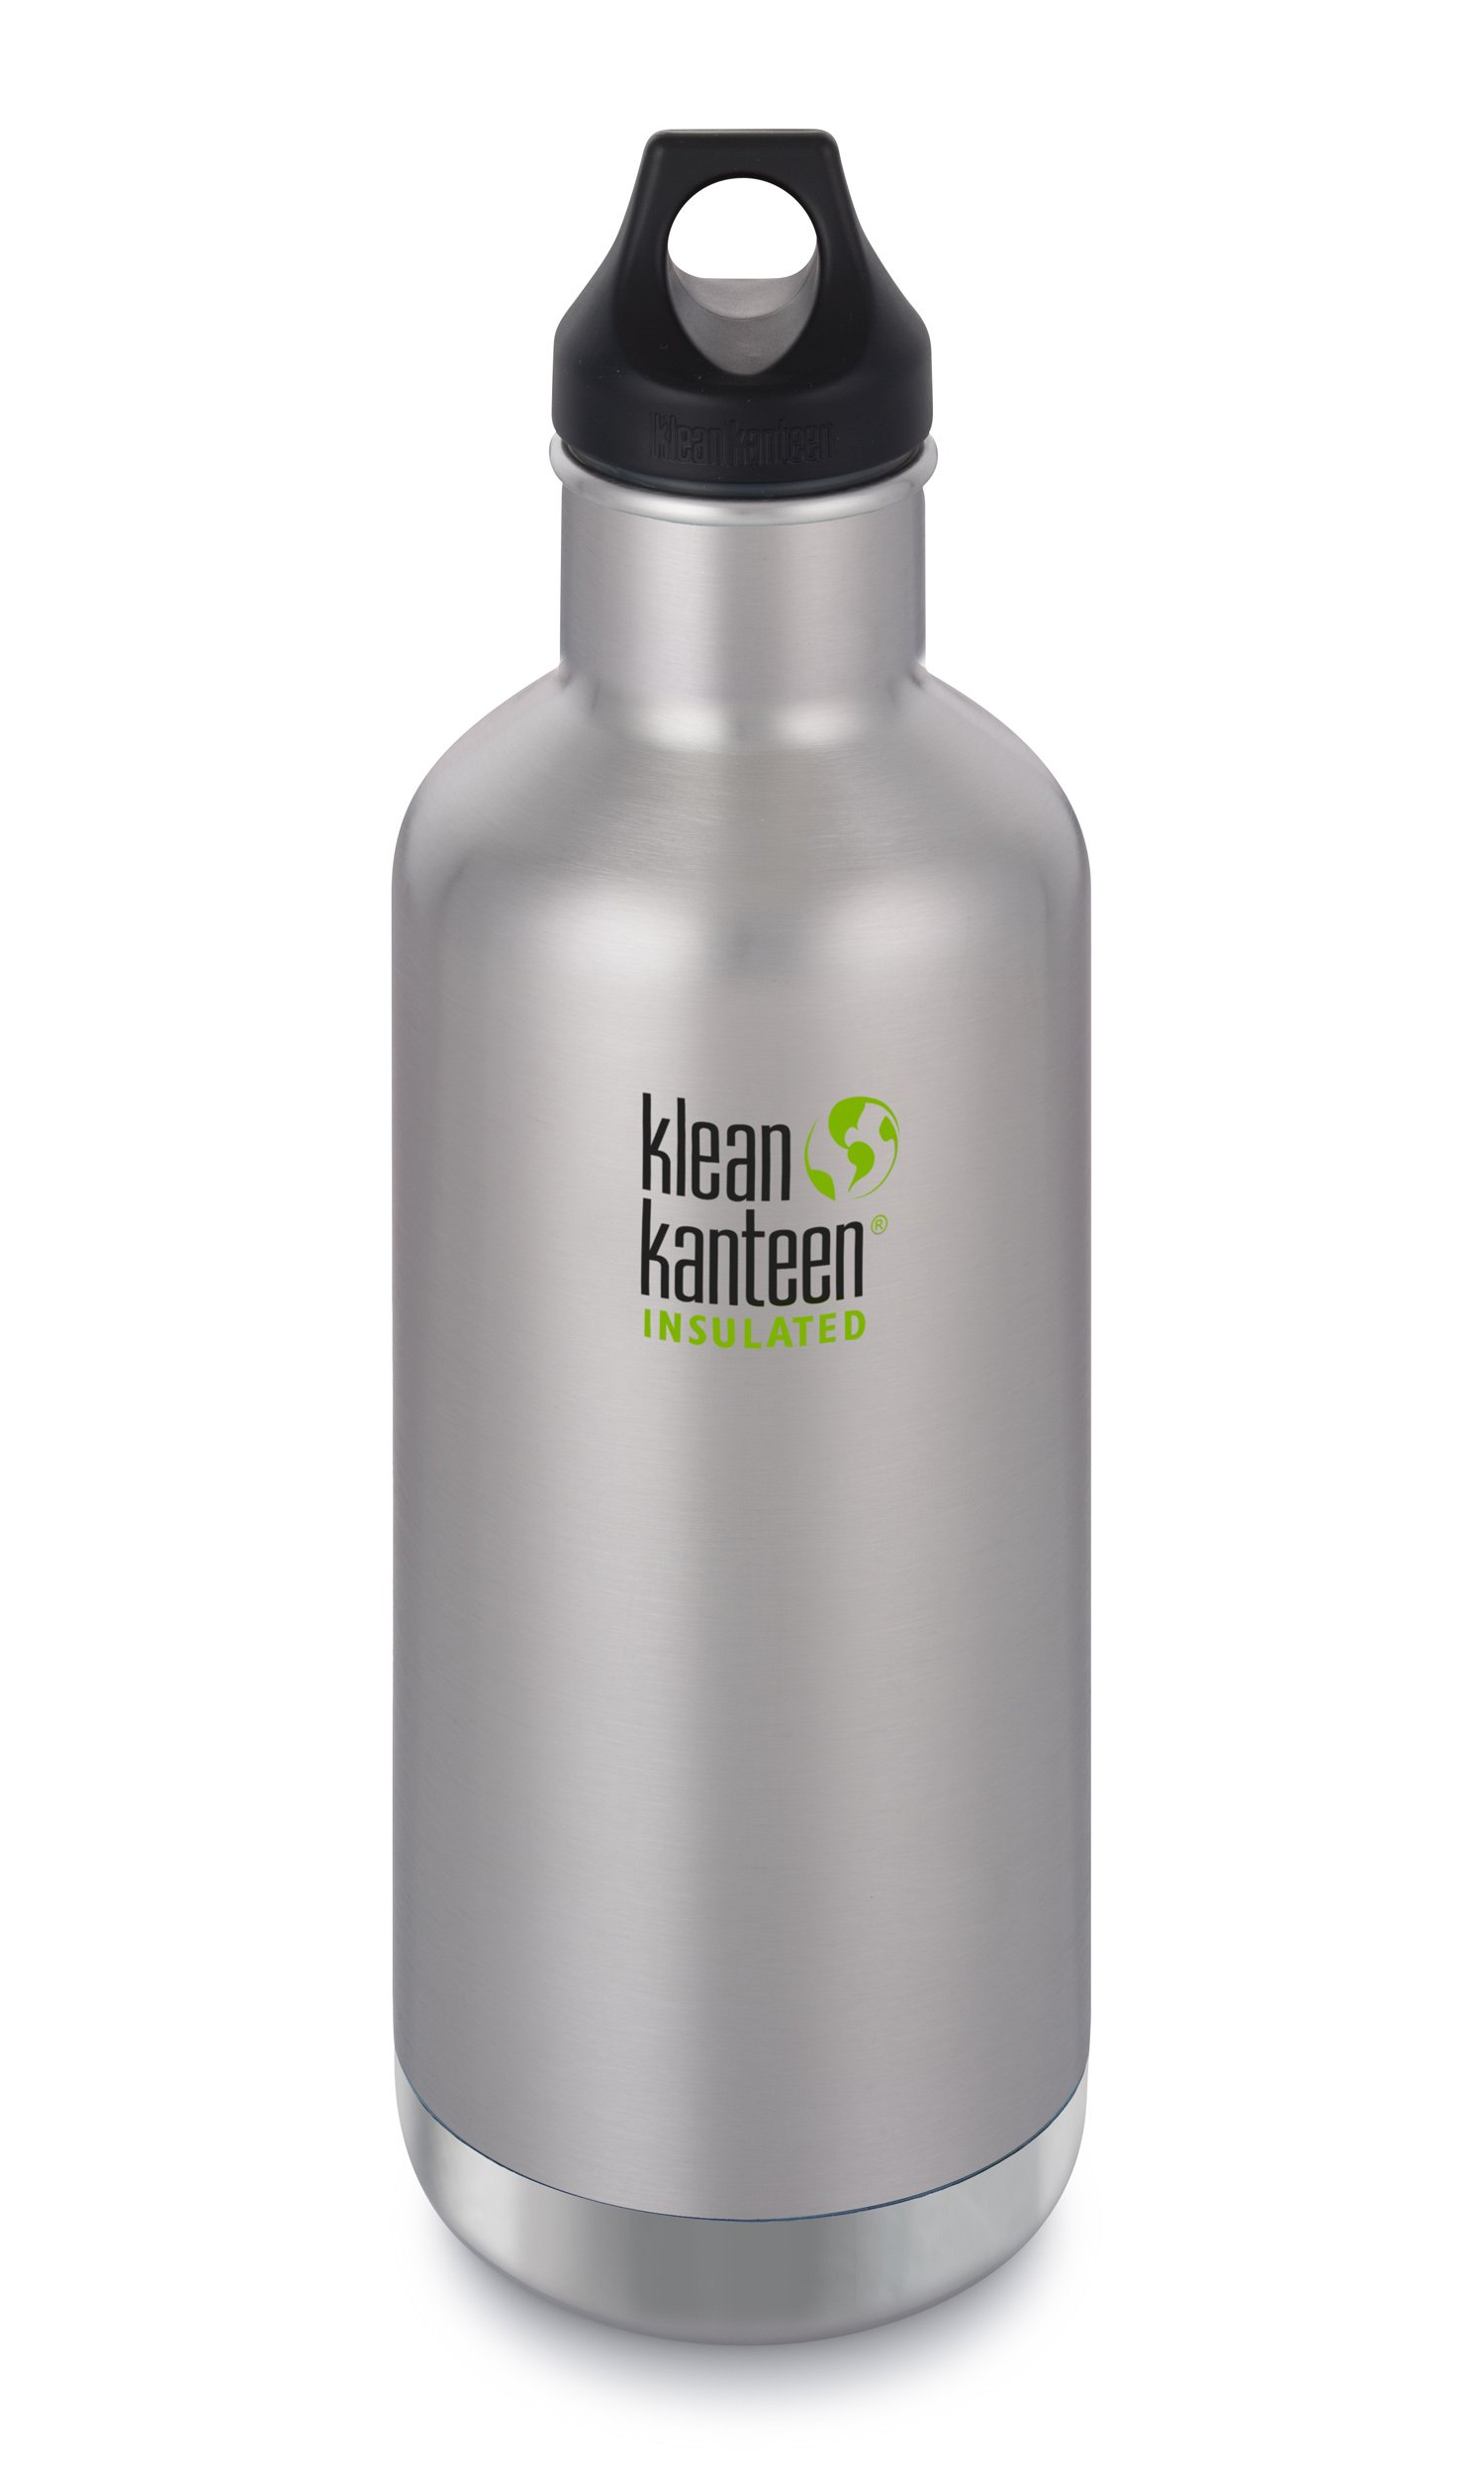 Klean Kanteen Classic Insulated Stainless Steel Water Bottle with Leak Proof Loop Cap - 32oz - Brushed Stainless